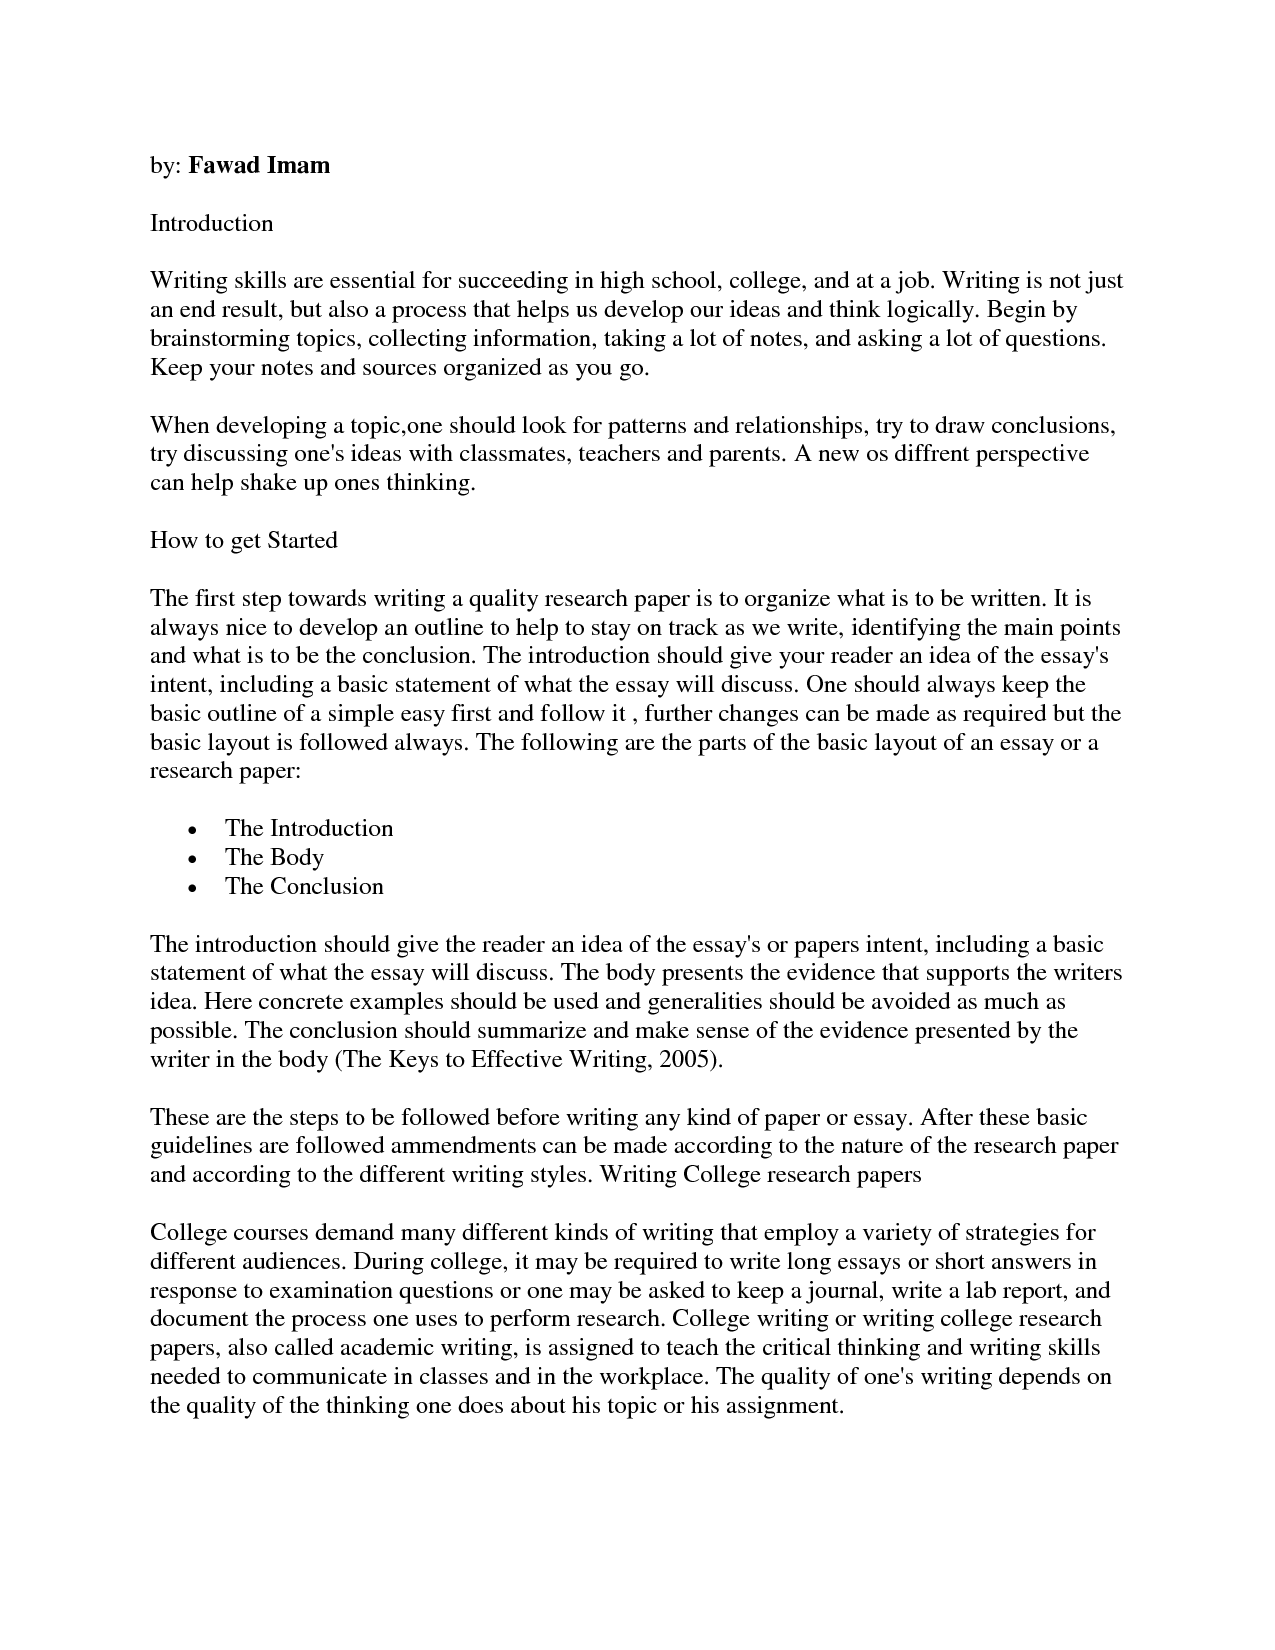 006 How To Write Research Papers Paper Outstanding A Proposal In Apa Format Sample History Thesis Full